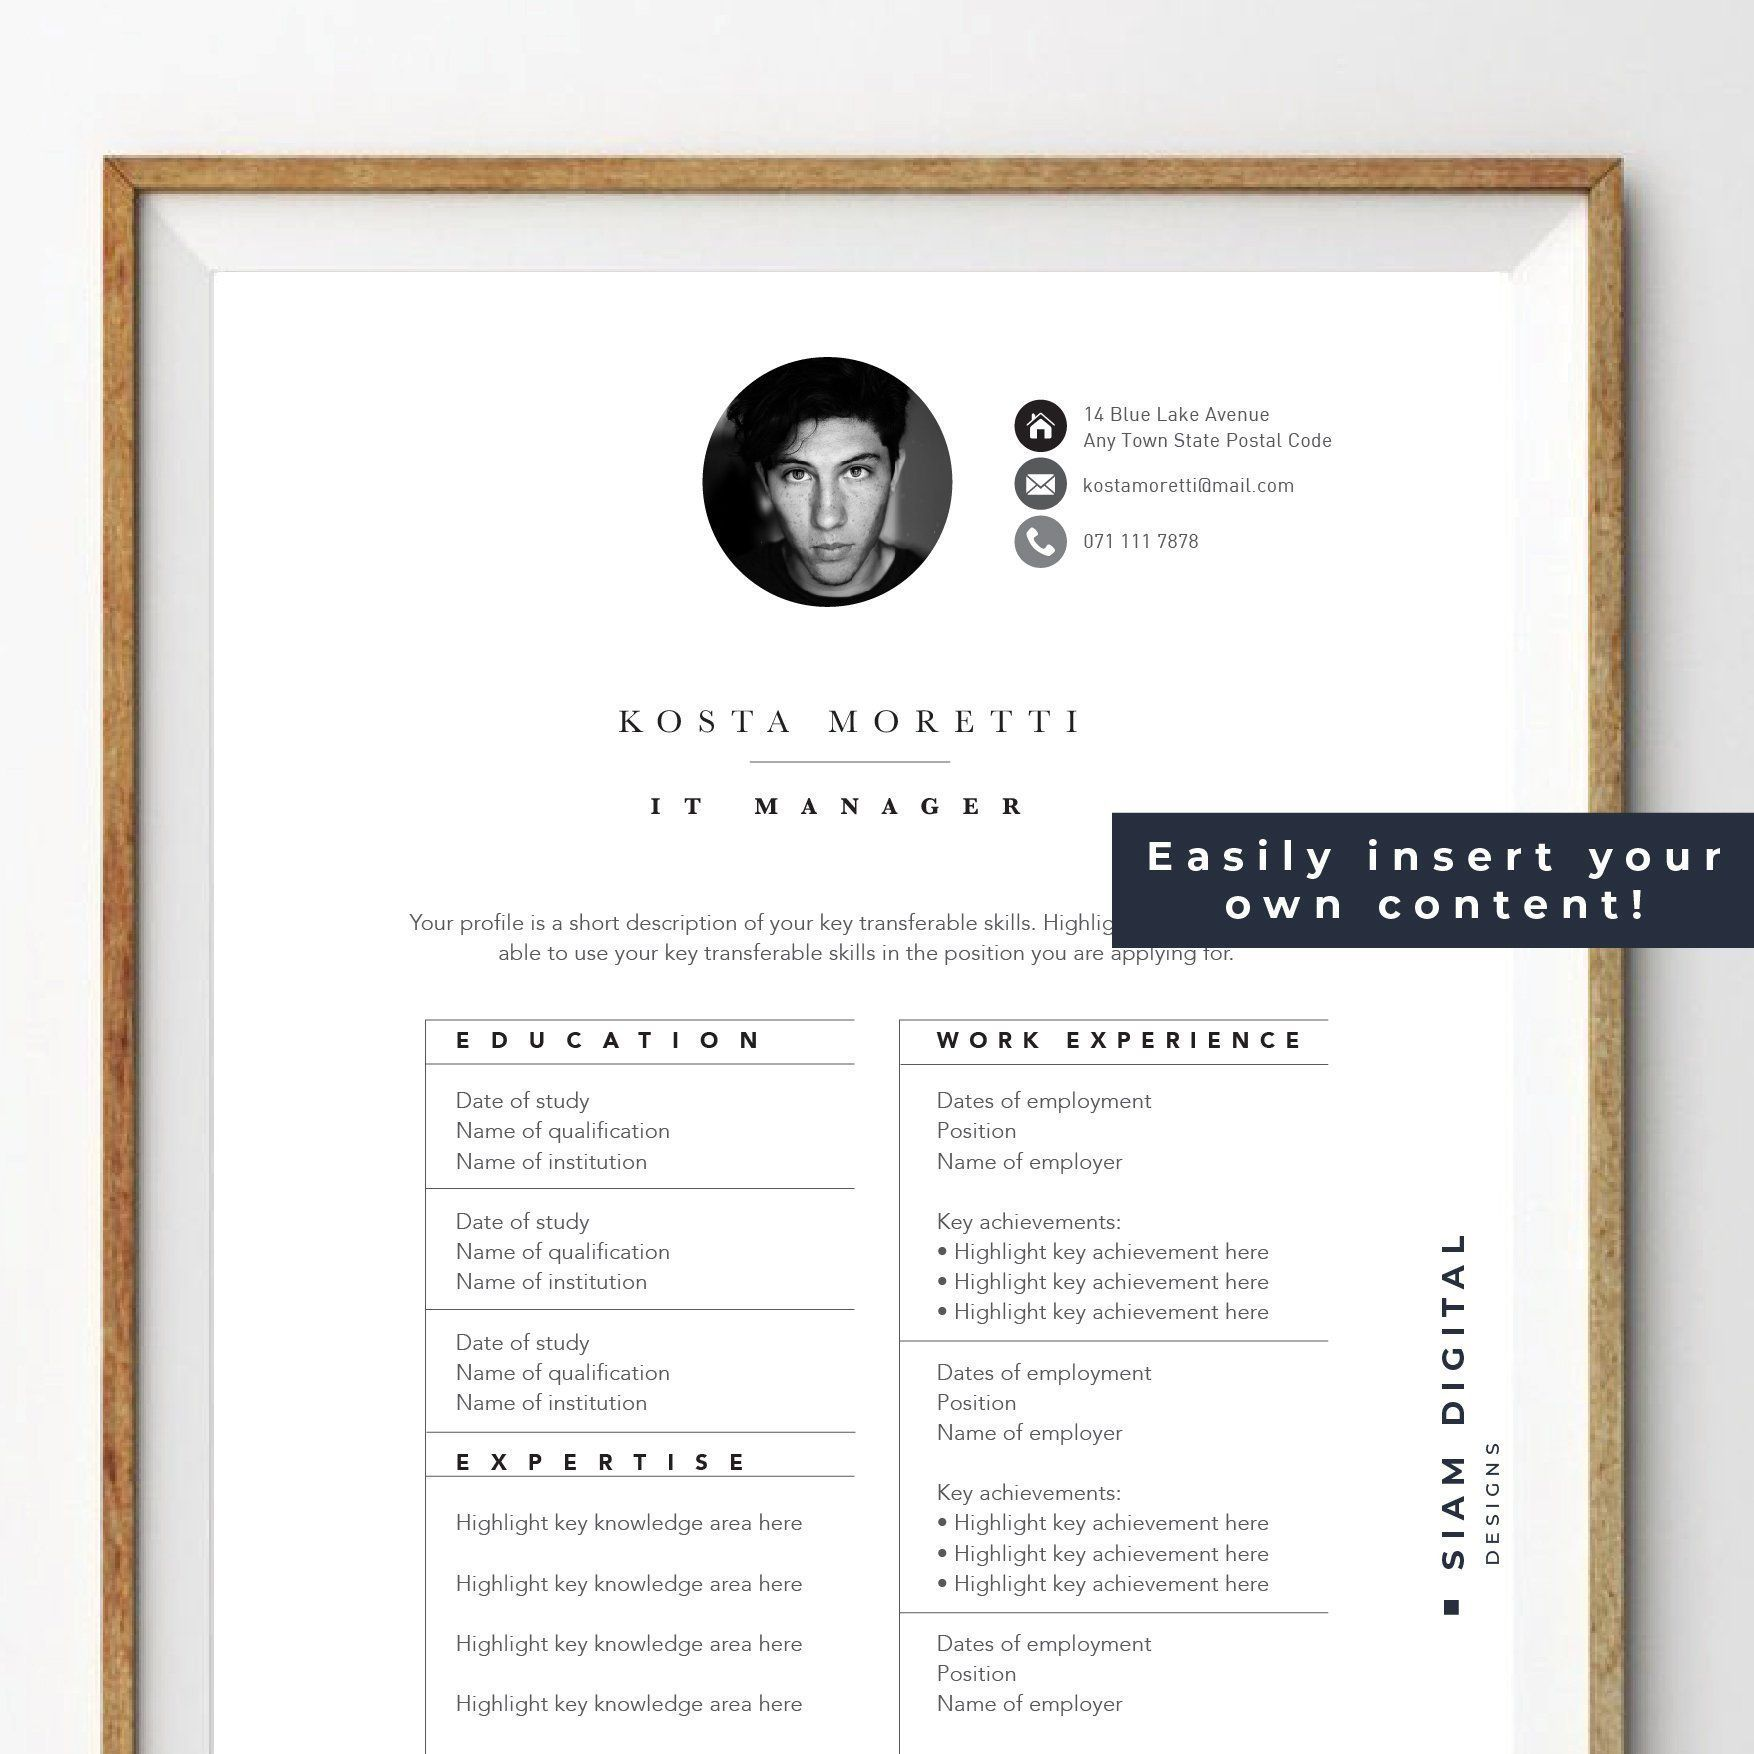 Resume And Cover Letter Template Pack Modern Design Professional Layout For Ms Word Instant Downl Cover Letter Template Letter Templates Resume Writing